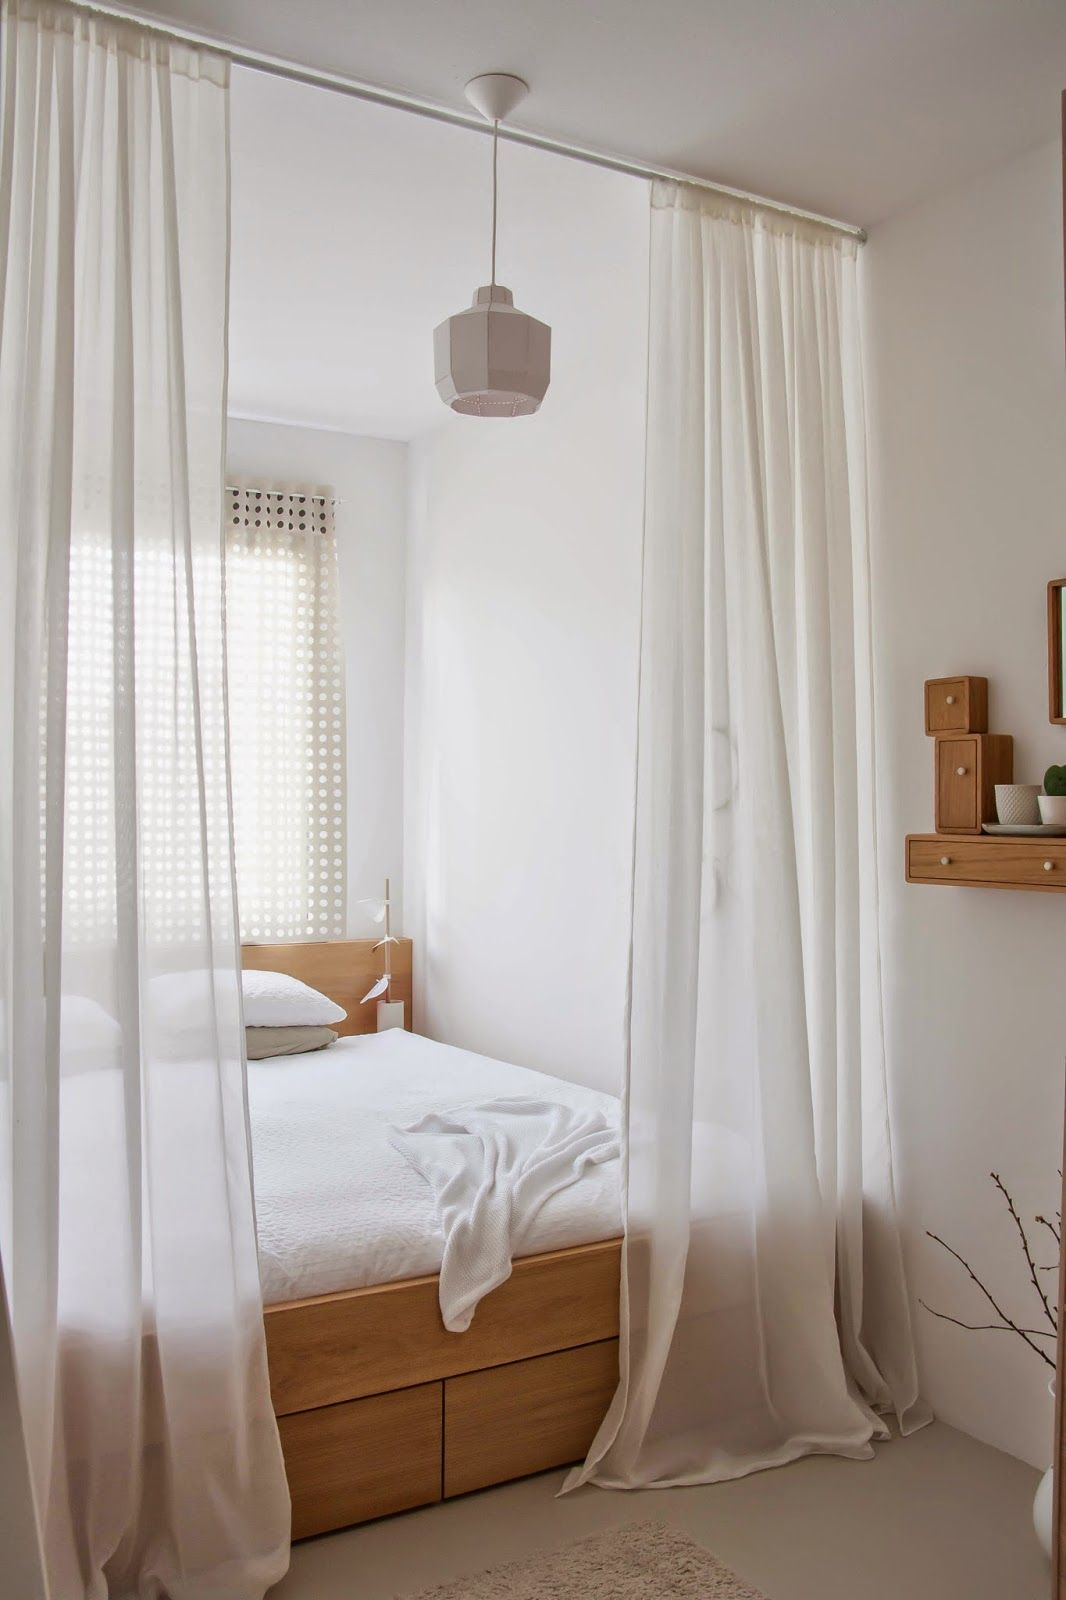 How To Create Dreamy Bedrooms Using Bed curtains | Camas, Espacios y ...